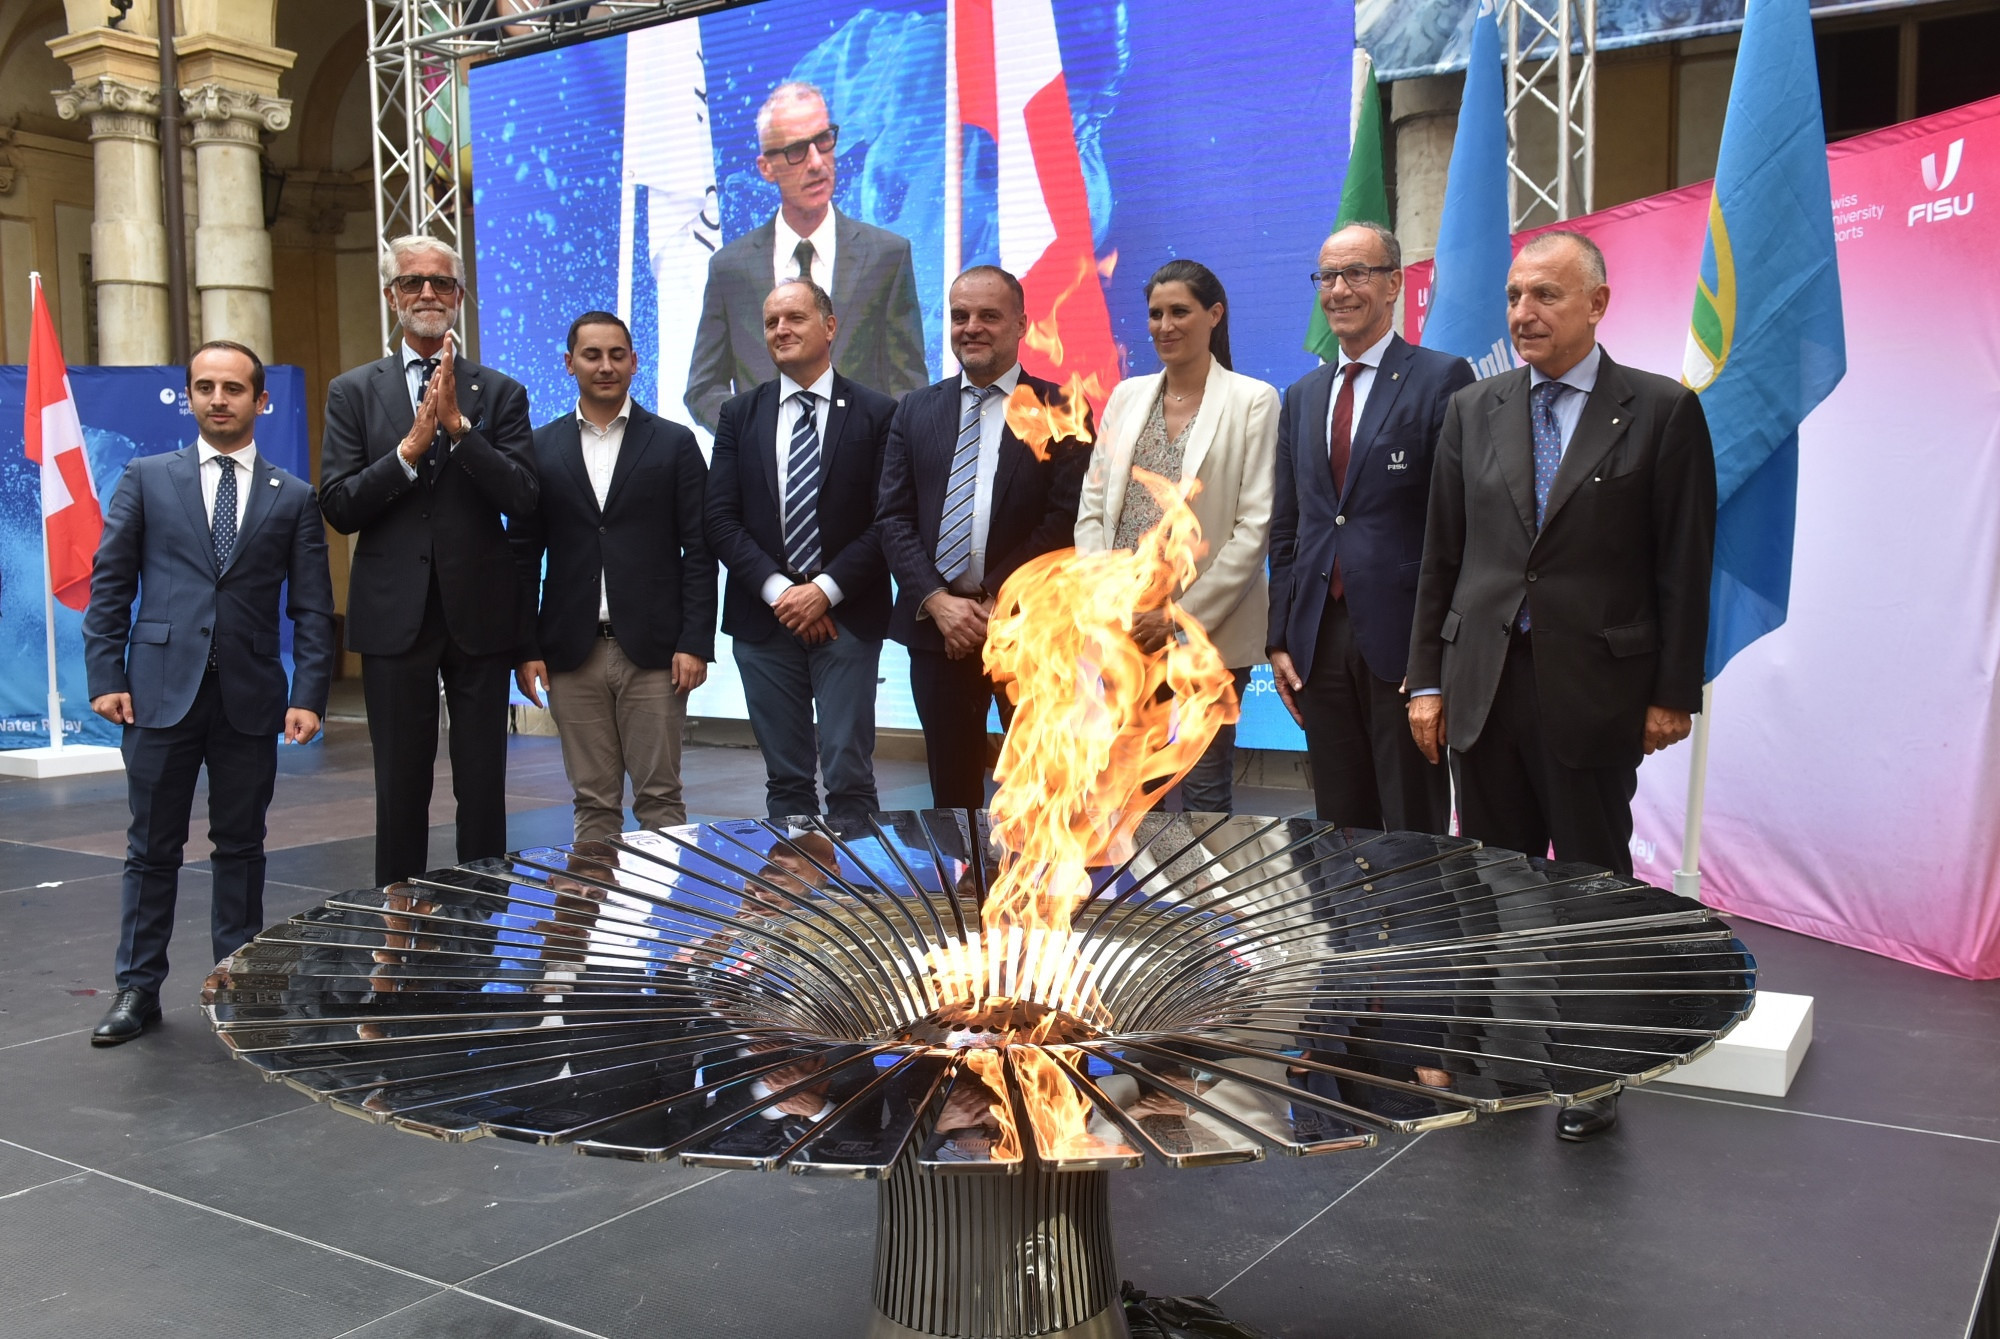 Lucerne 2021 Winter Universiade Flame Relay turns fire to water